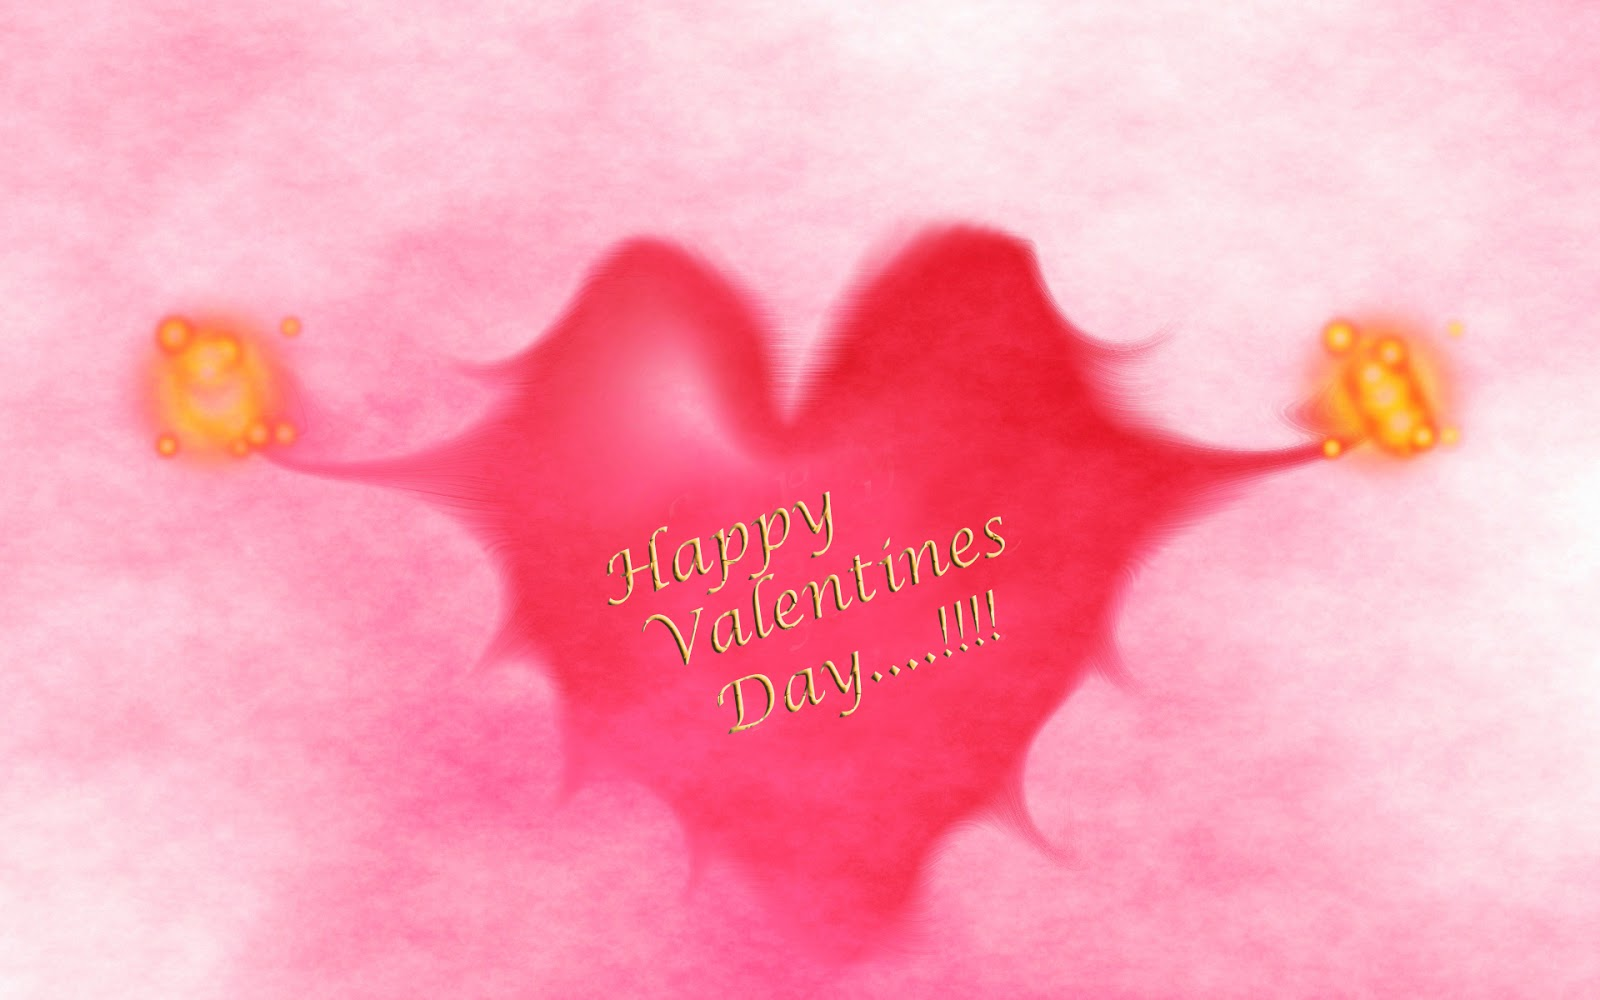 with_heart-happy-valentine-day